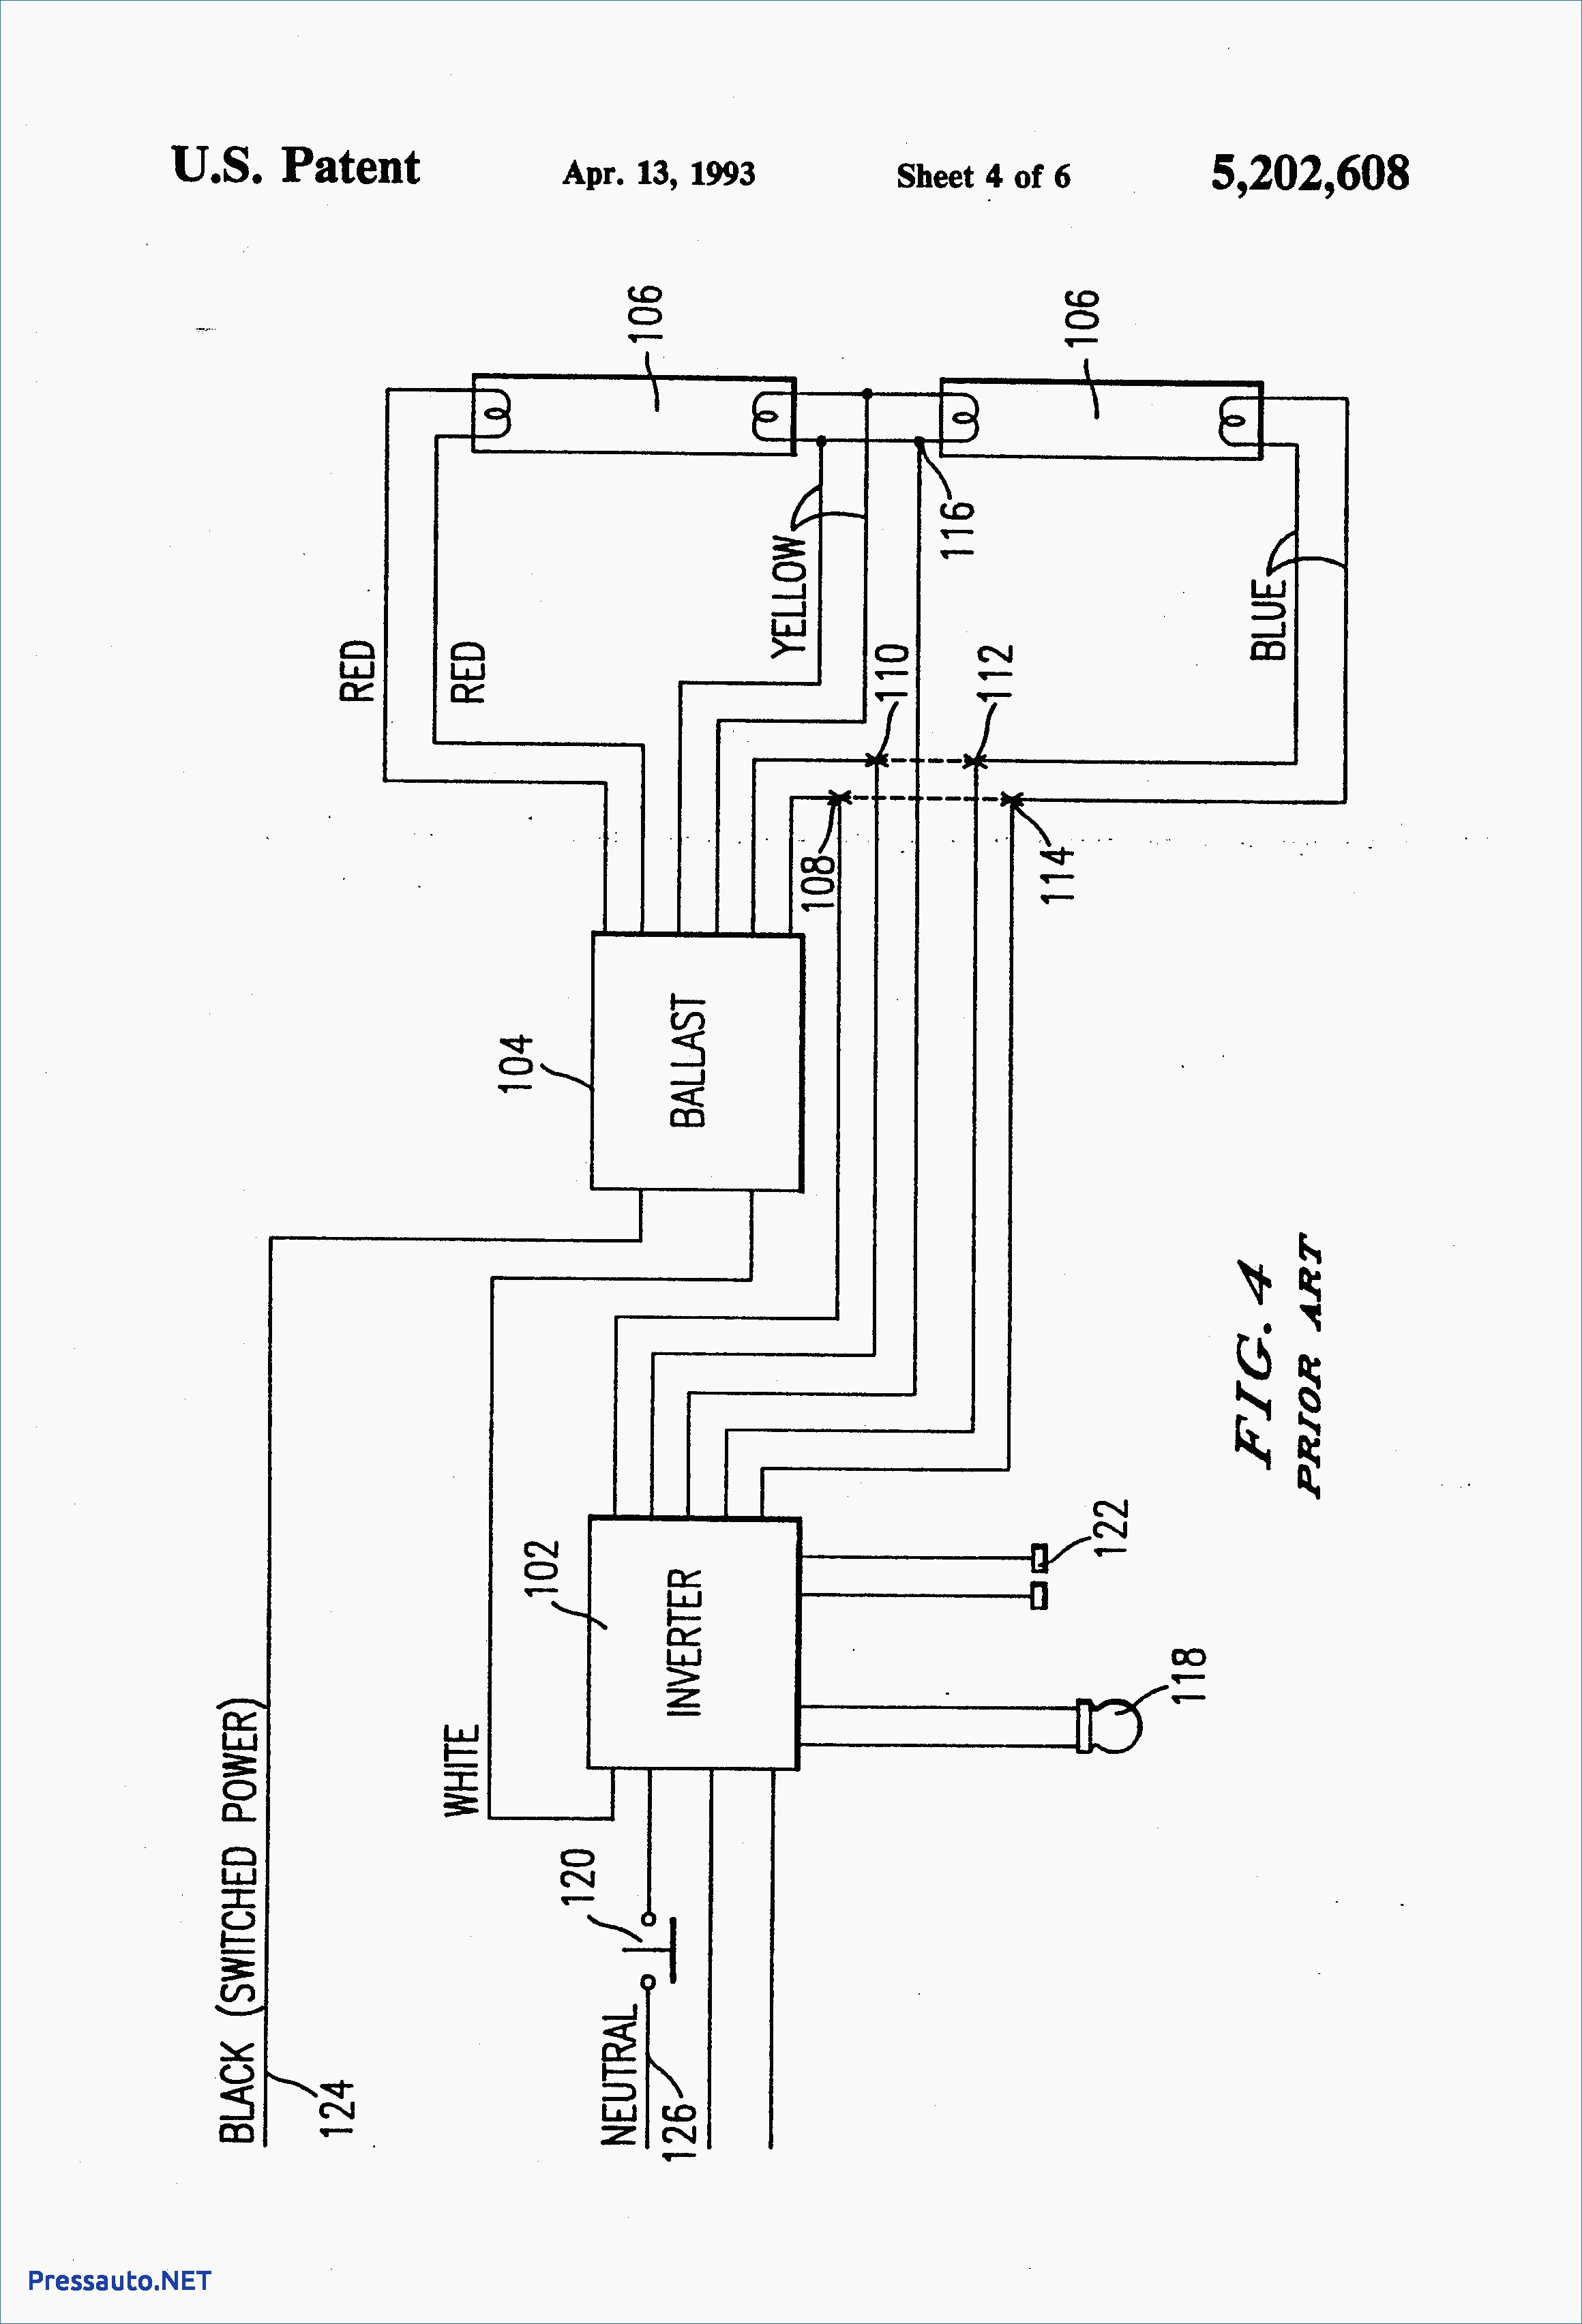 Tork Wiring Schematic for Lighting Contactor and Photocell Sn 2694] Cell Wiring Diagram Intermatic Time Clock Of Tork Wiring Schematic for Lighting Contactor and Photocell Lighting Time Clock Wiring Diagram Probleme Audi A4 Voyant